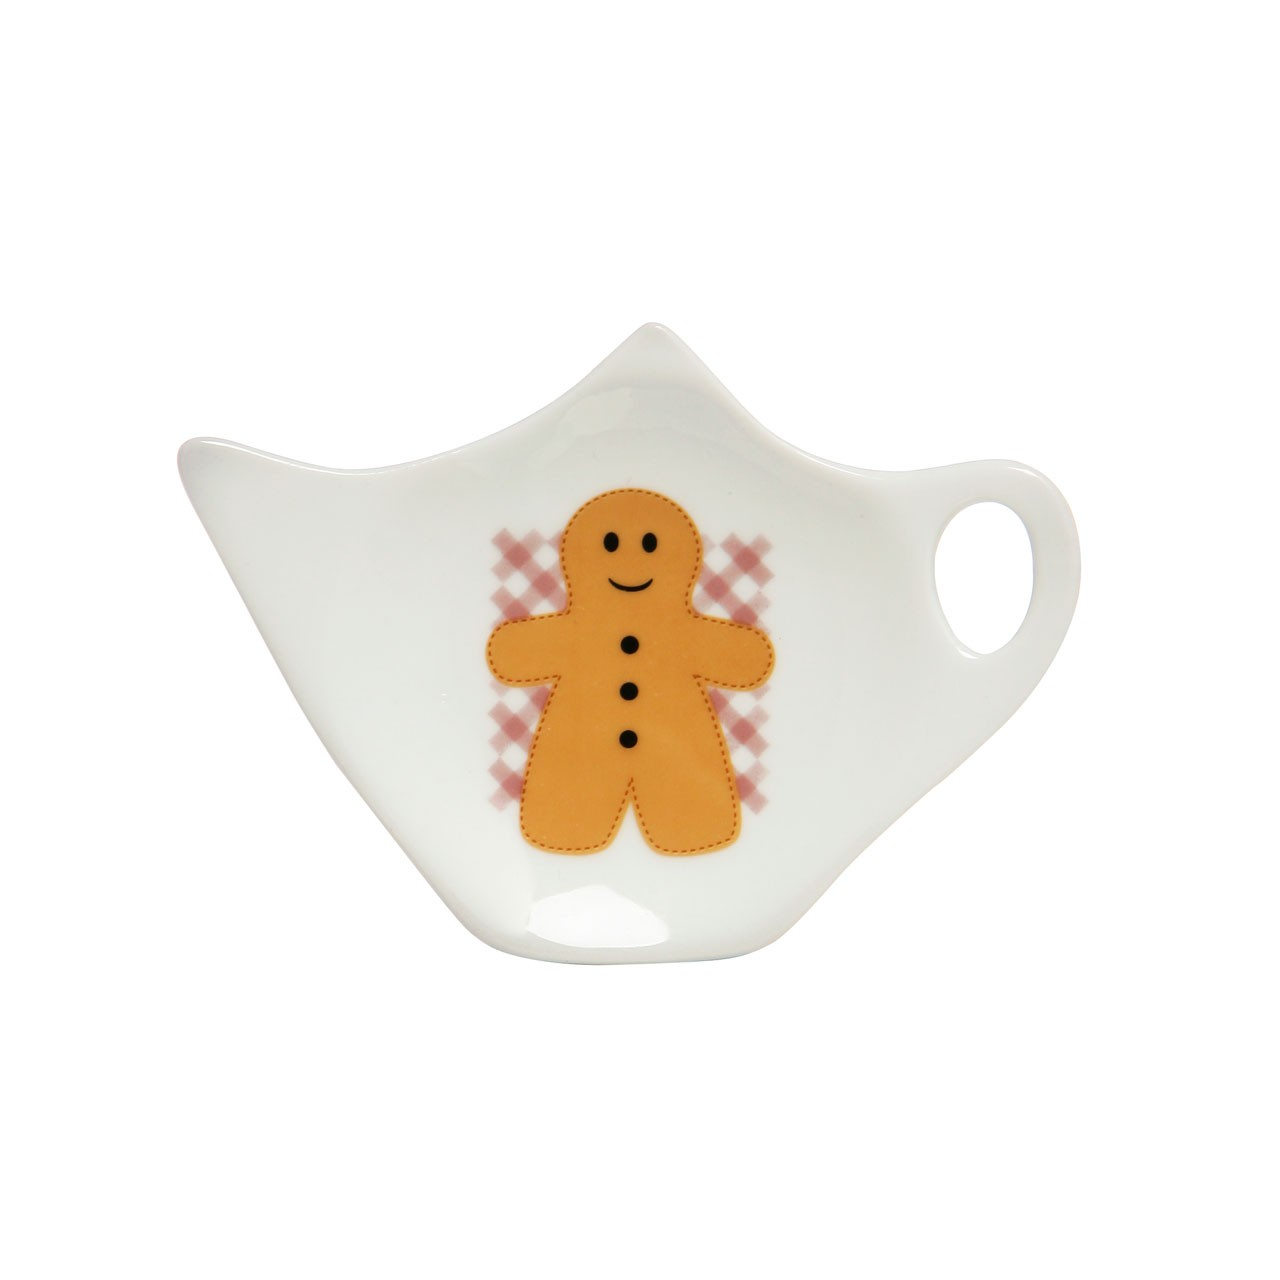 Gingerbread Man Teabag Tidy,Porcelain